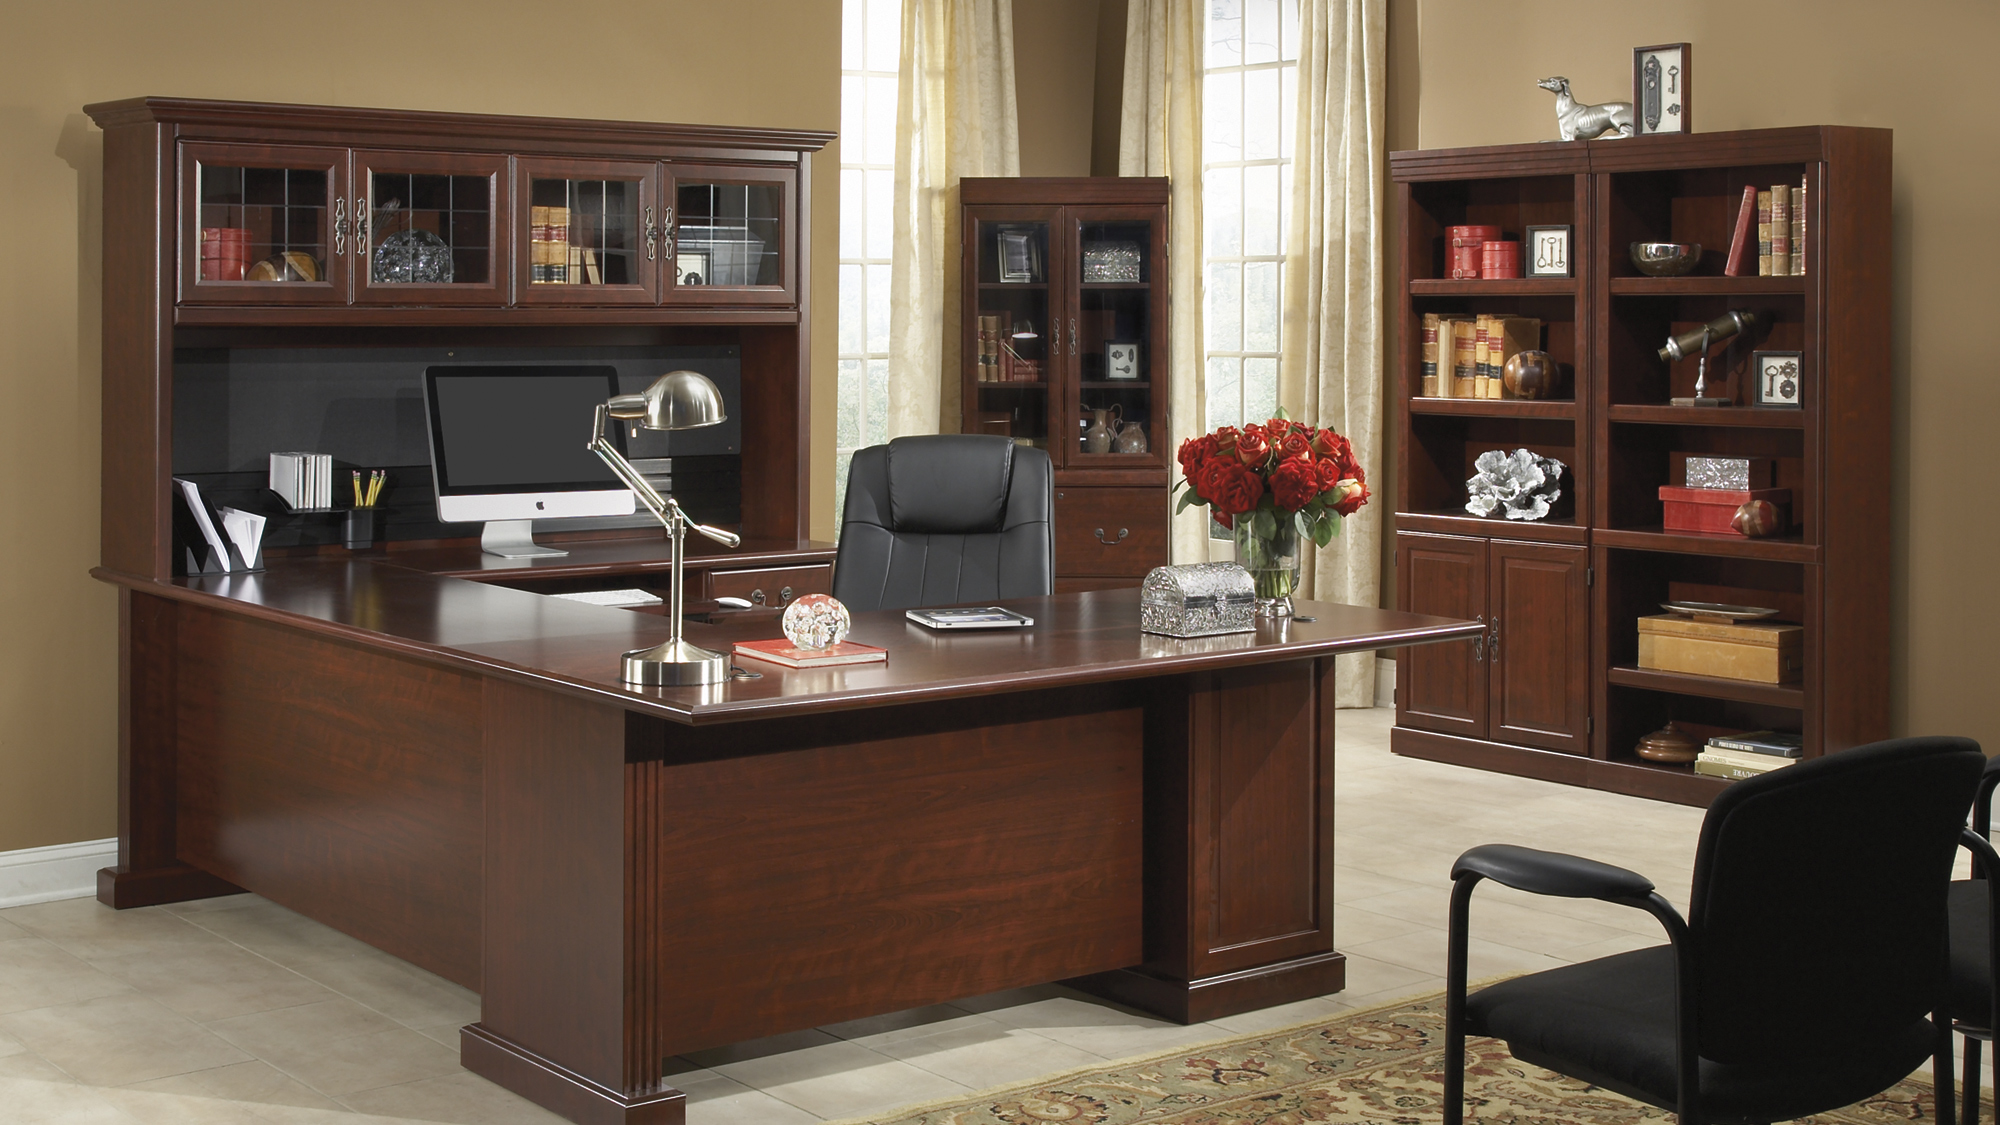 Home office furniture Heritage Hill Collection: filing cabinet, home office desk with bookshelves and JERVNWN